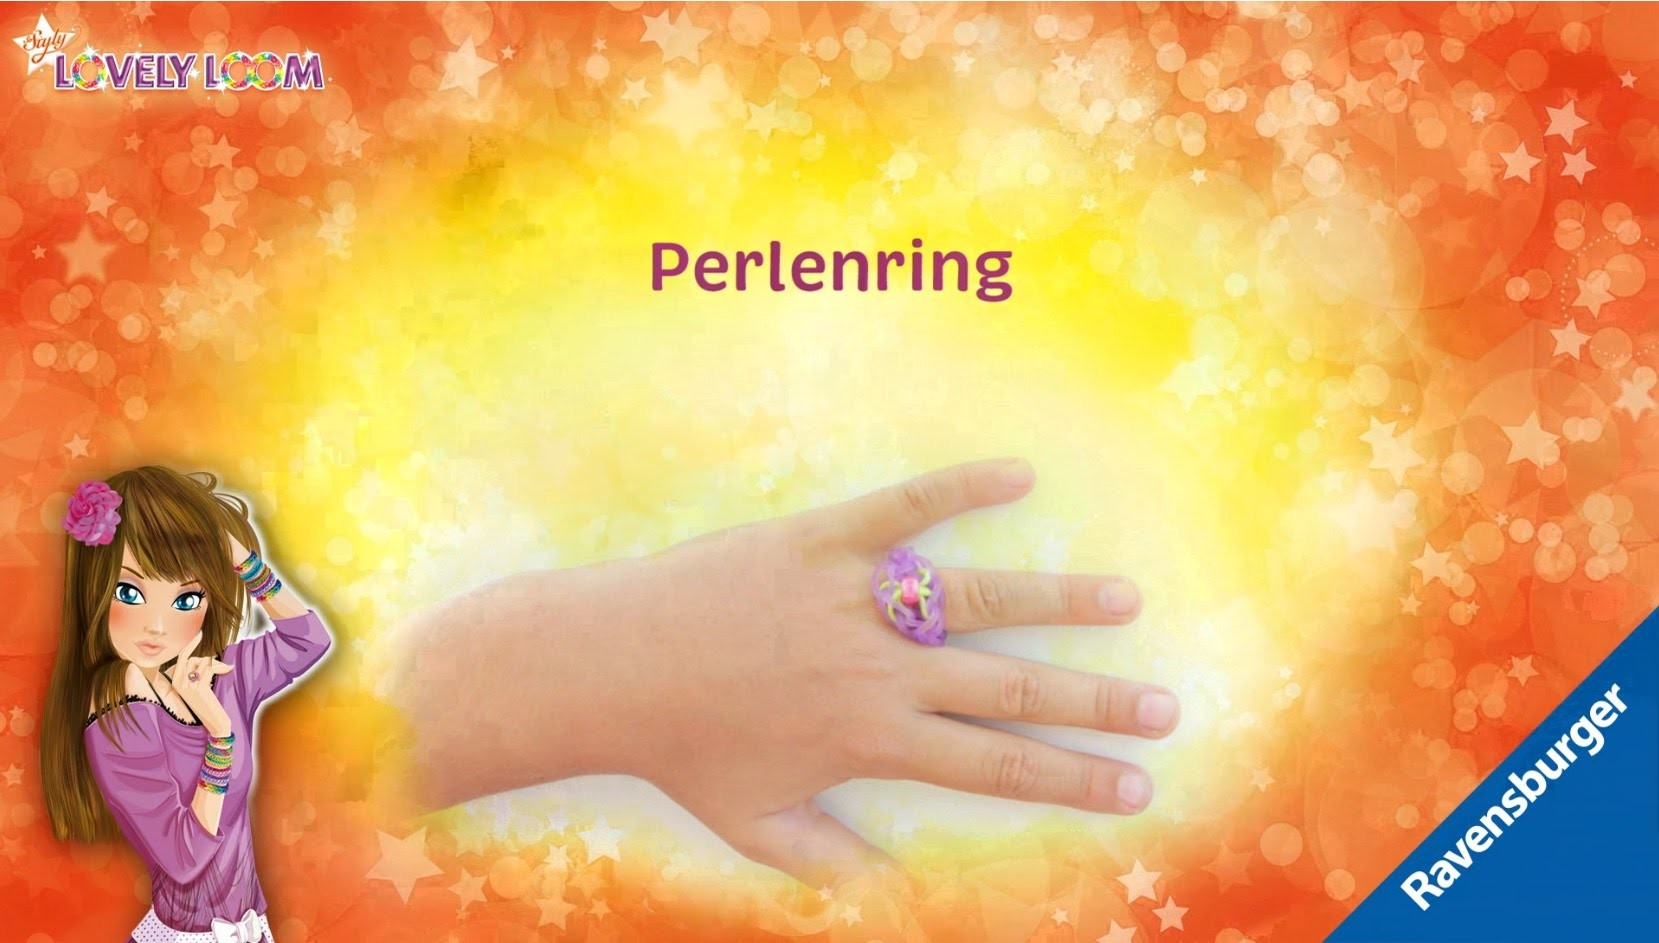 So Styly: Lovely Loom - Perlenring - Video-Anleitung